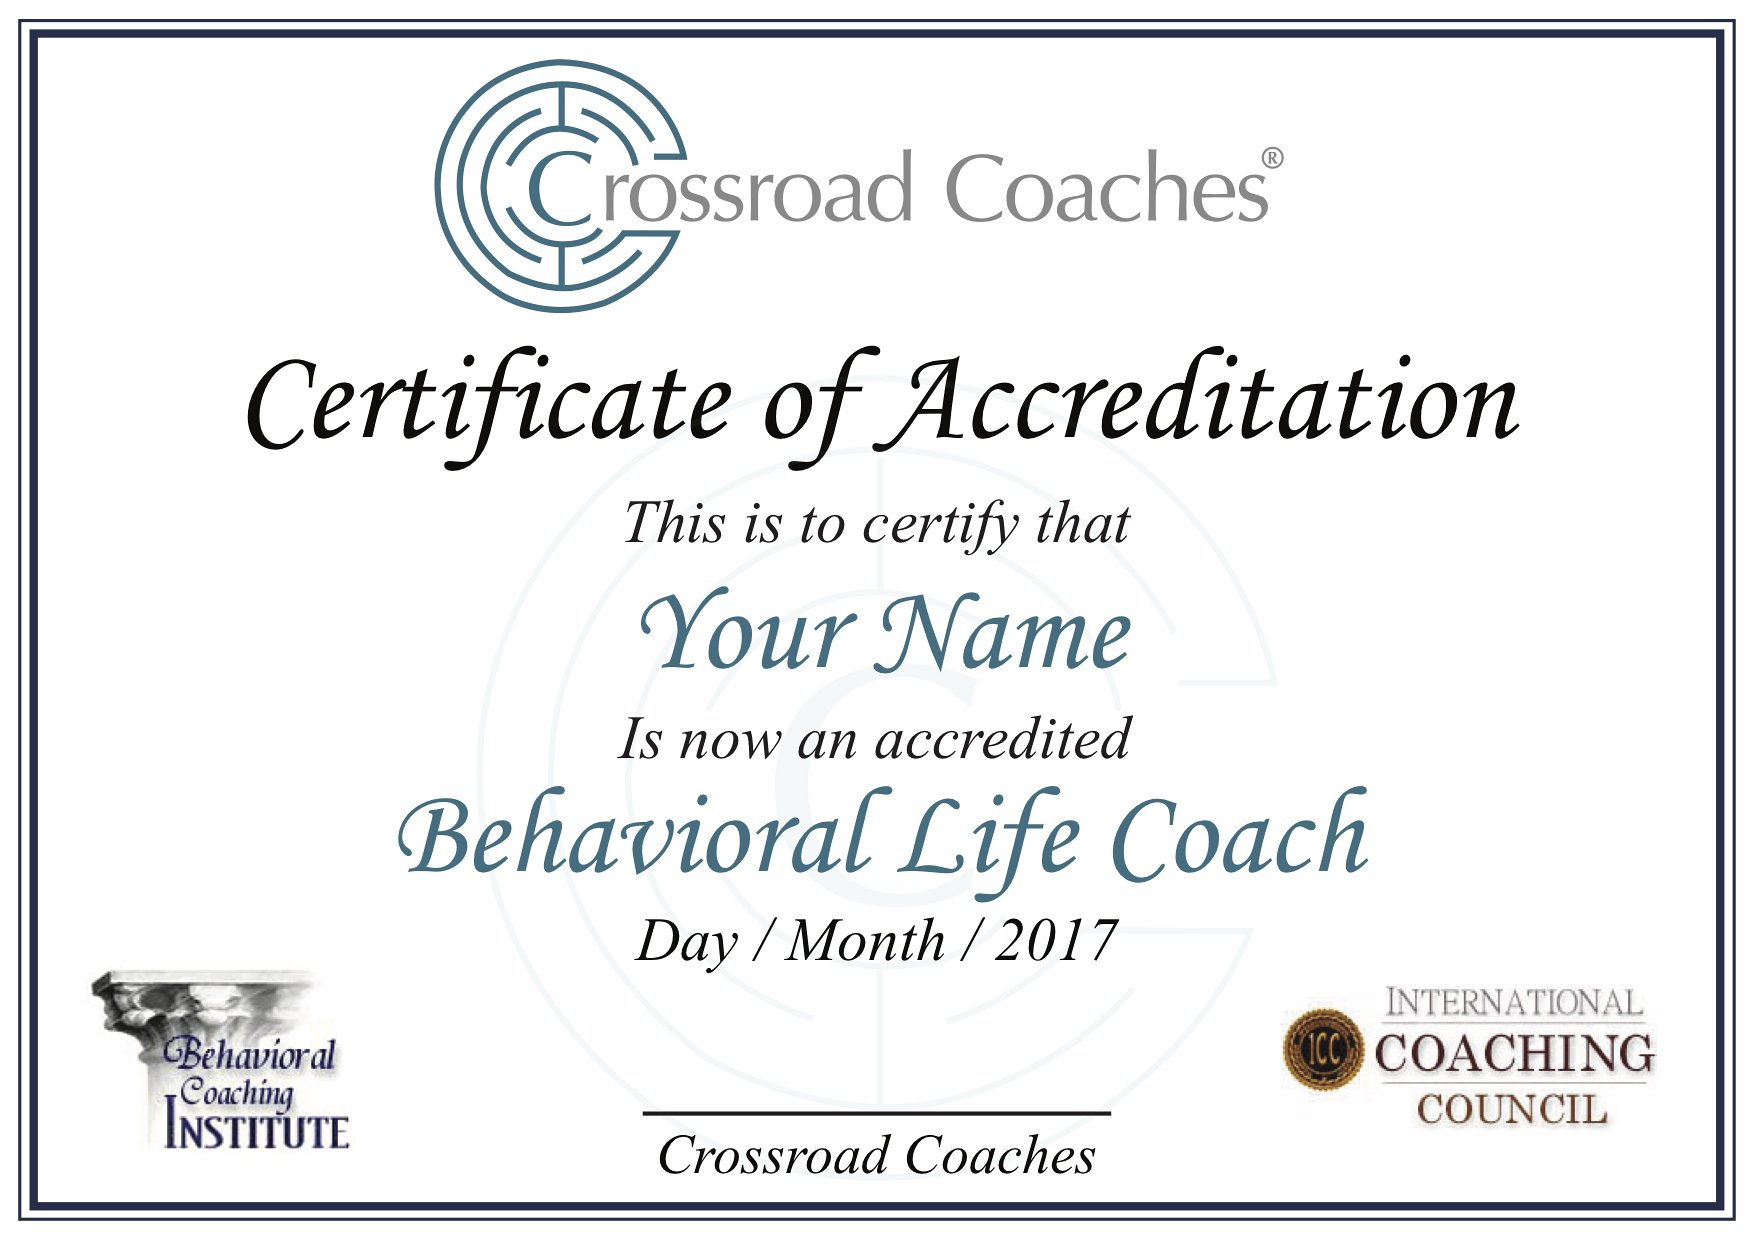 Accredited behavioral life coaching certification lebtivity xflitez Images